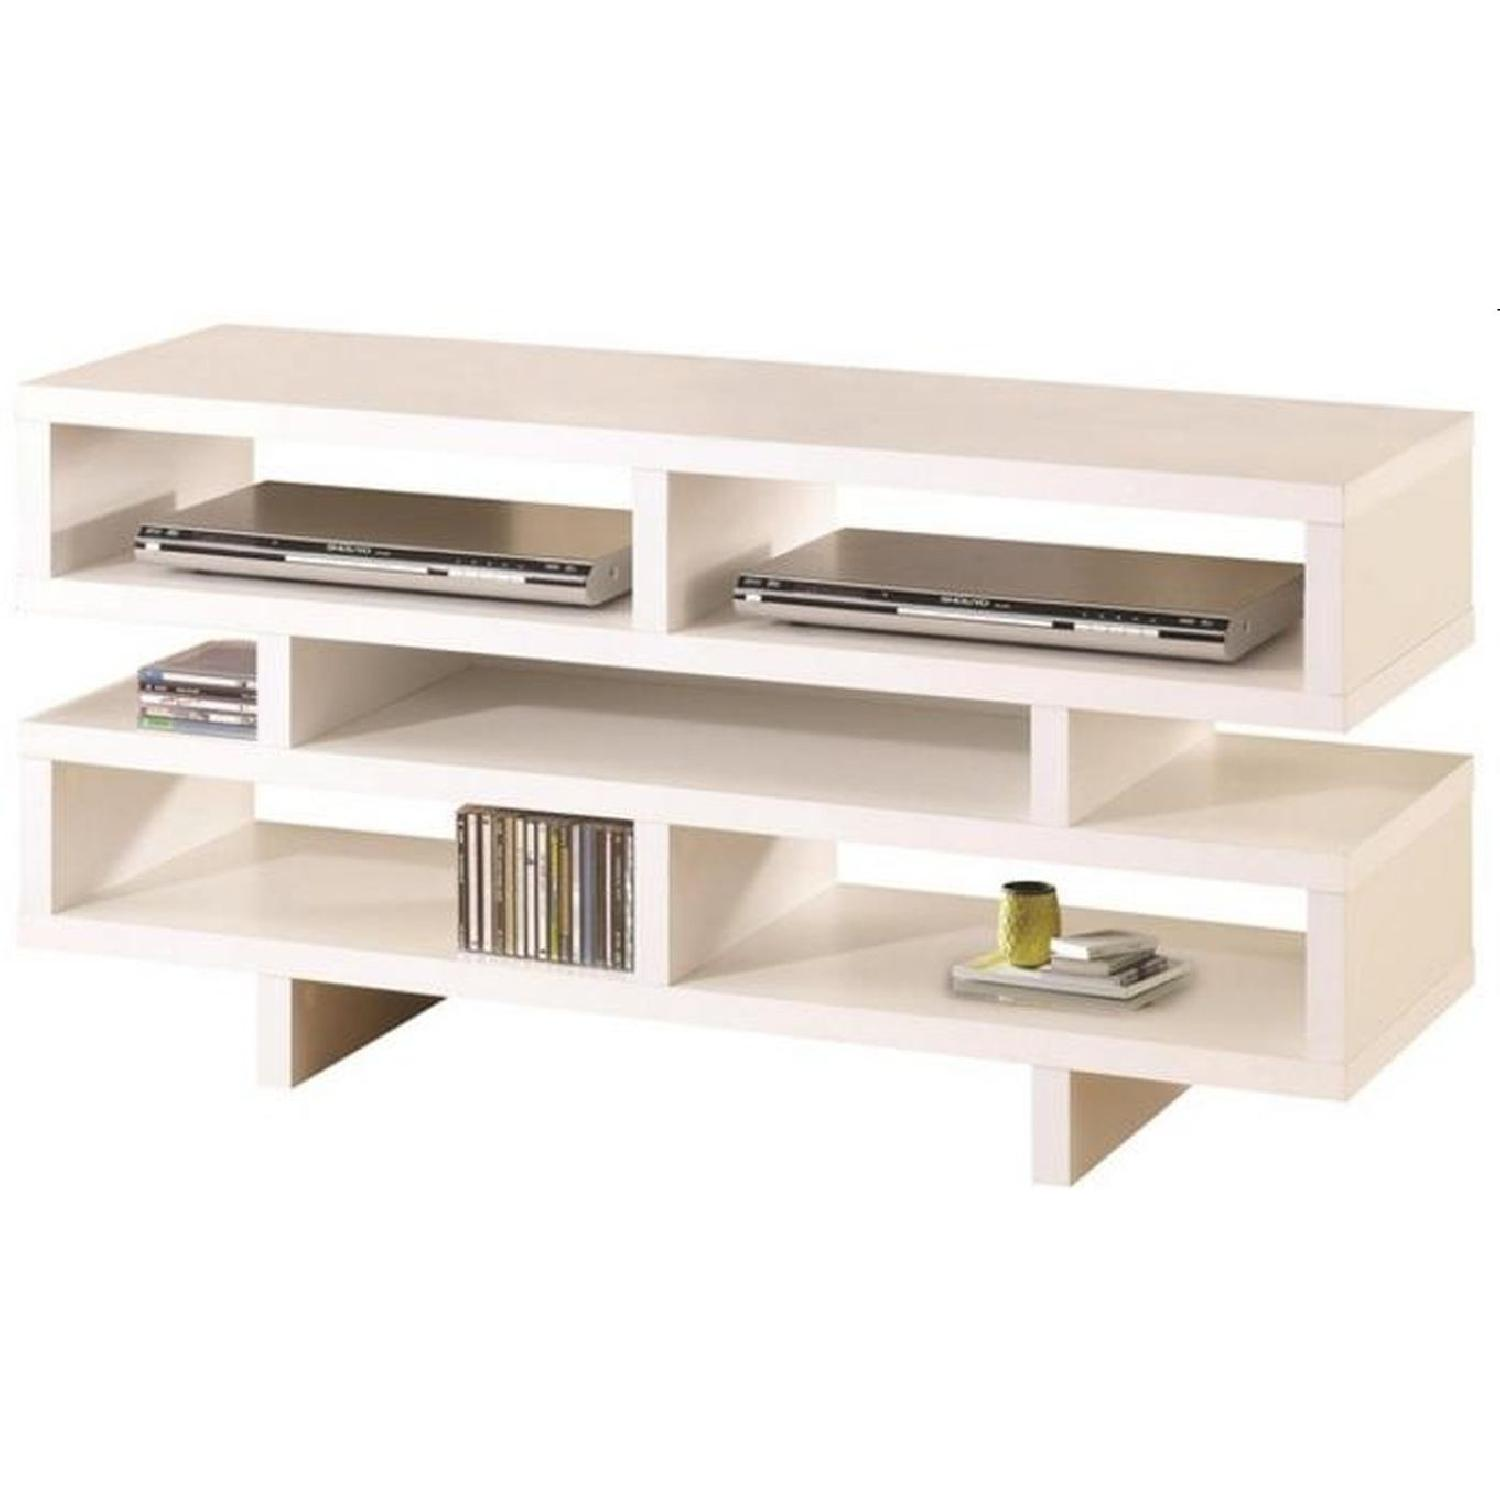 Modern TV Console in White Finish w/ Open Shelf Design - image-1